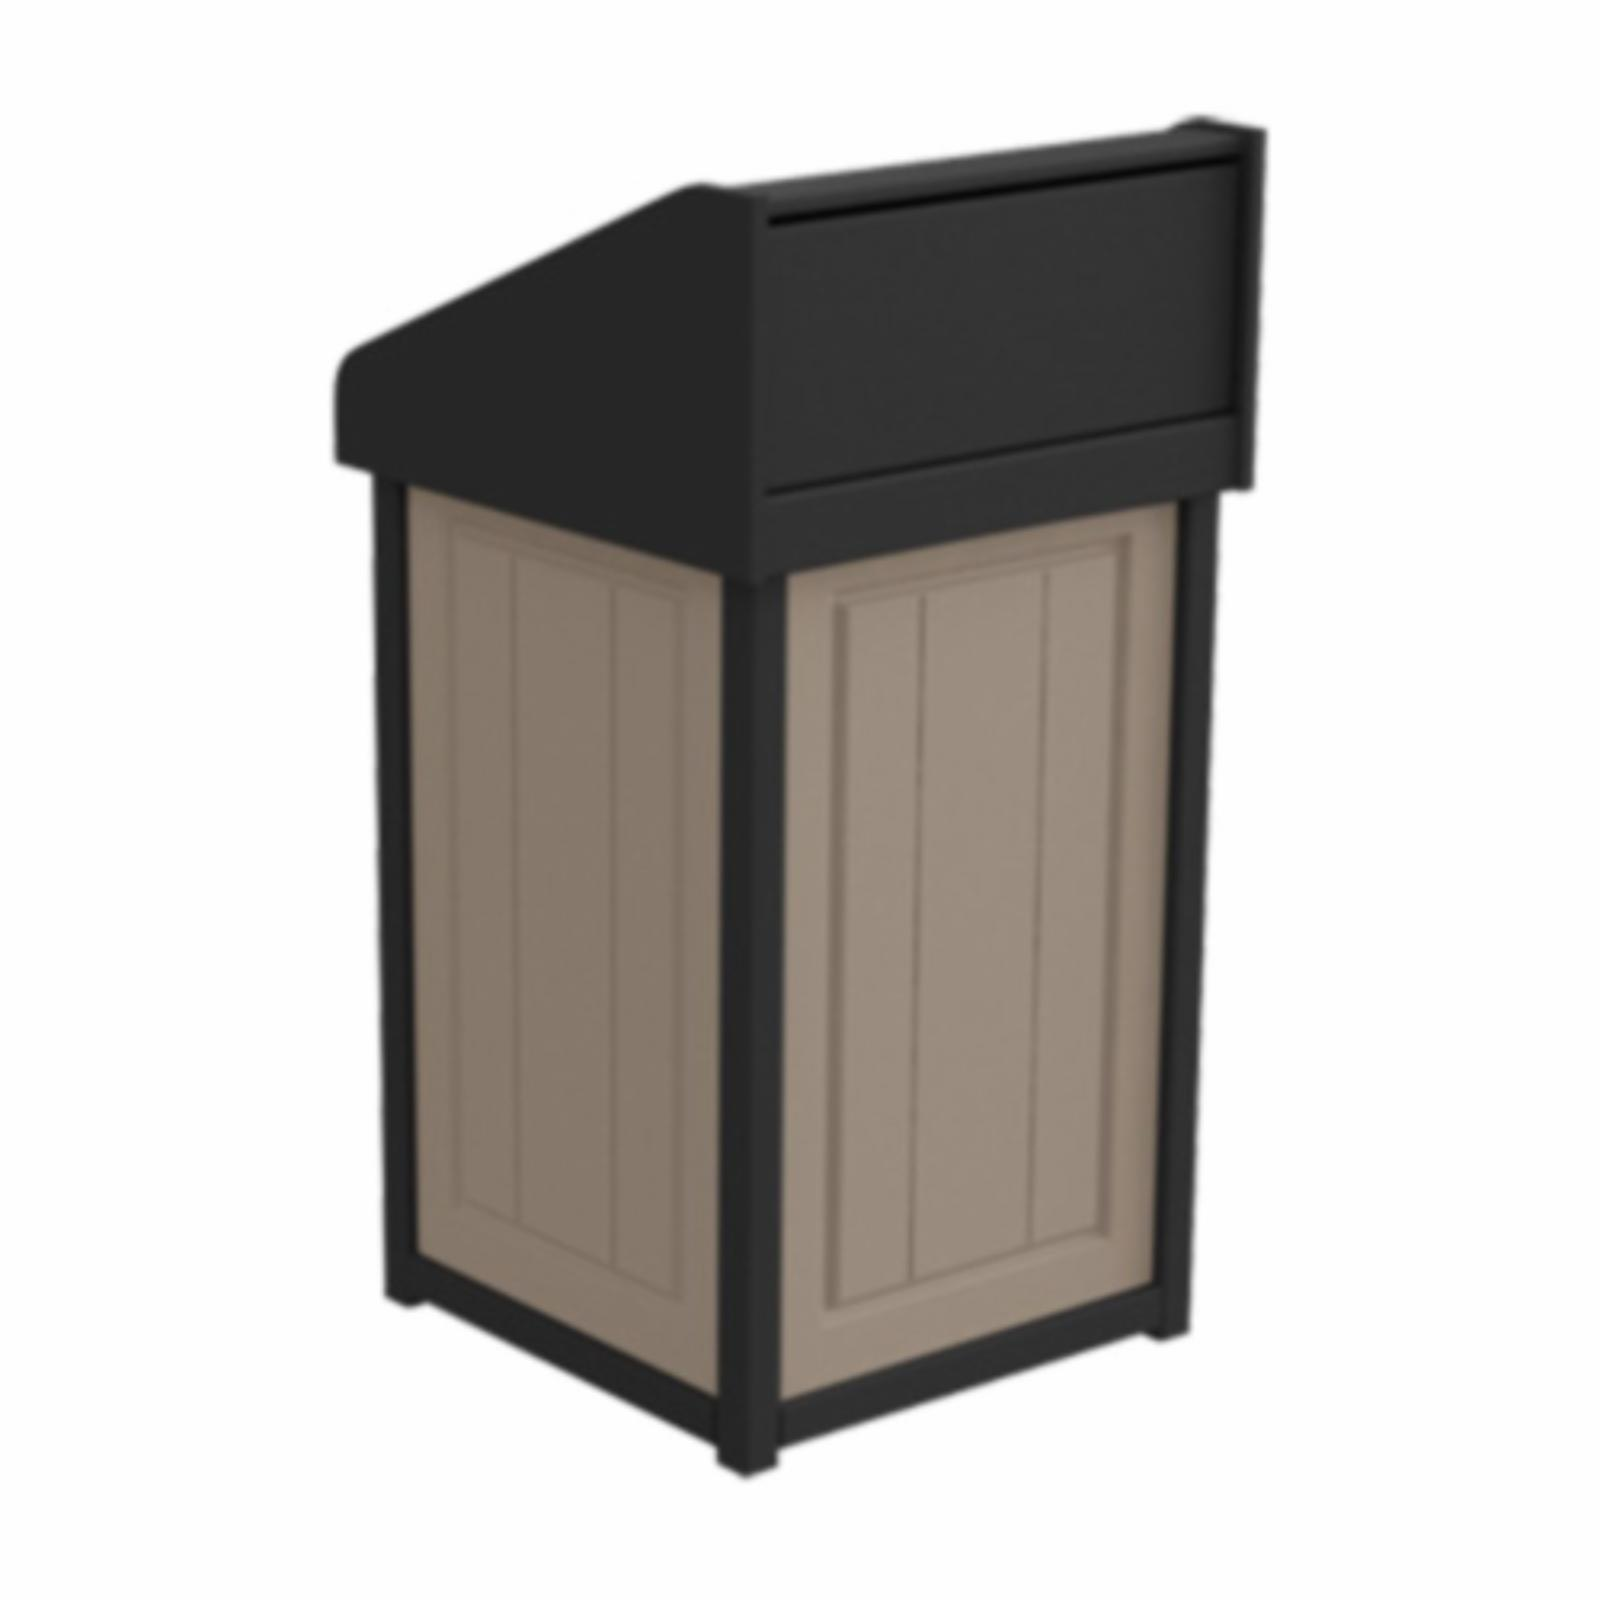 Treetop Products Two-Tone 33 Gallon Square Side Load Outdoor Push Door Trash Receptacle Desert Tan/Black - 4ZK4749-DT/BK